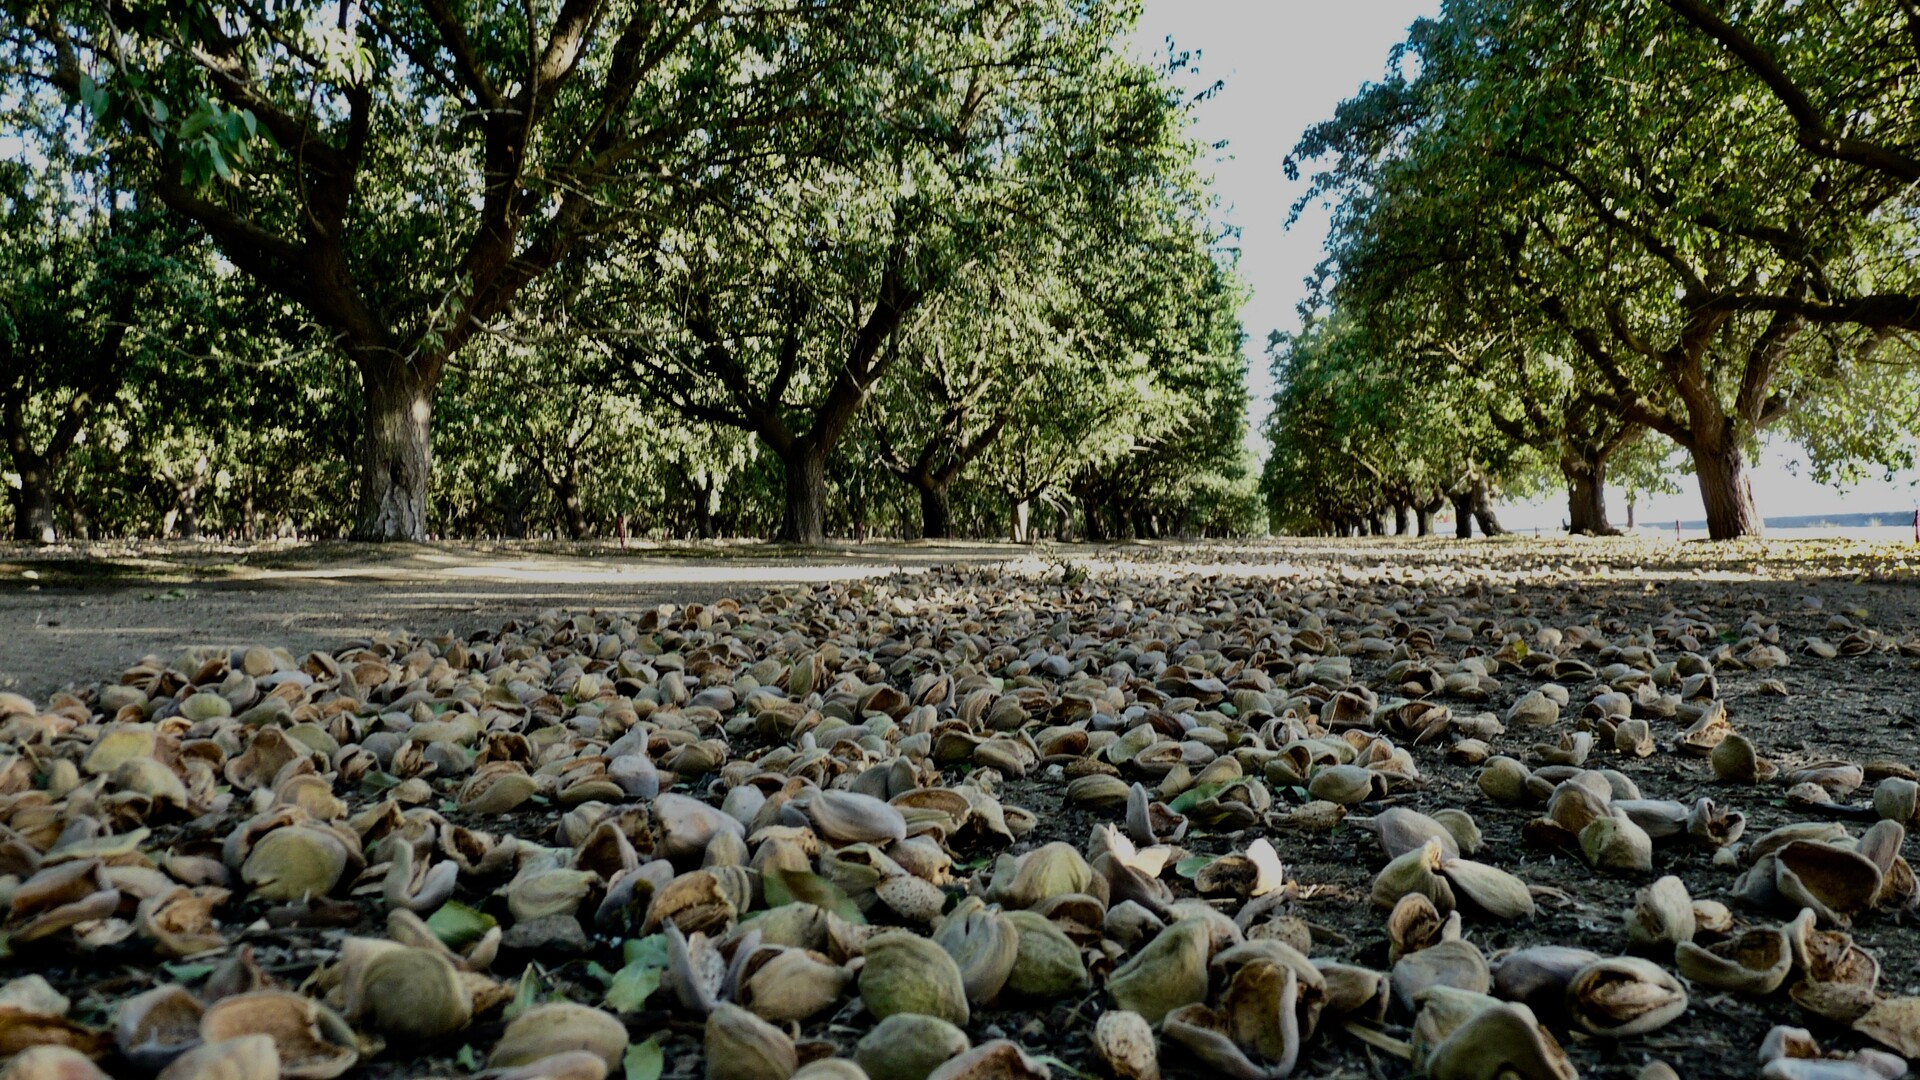 Hot Temperature and Fires Challenged Almond Grower